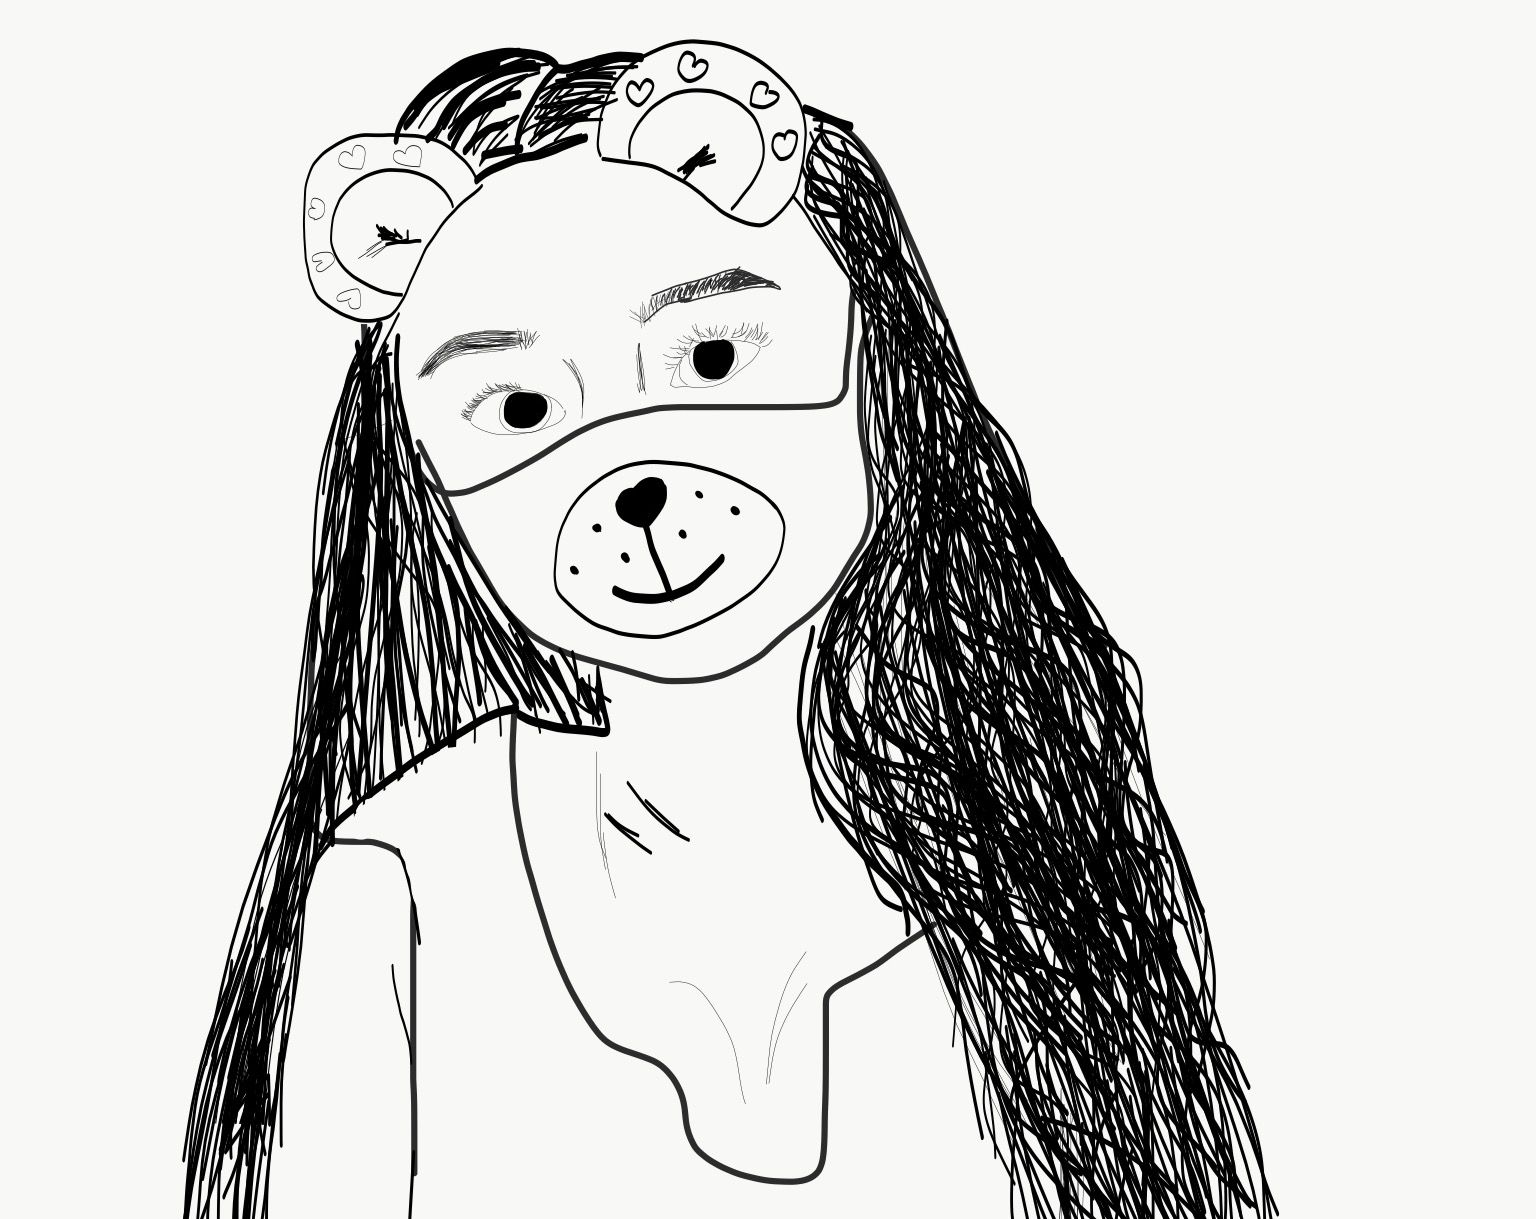 1536x1219 Outline Of A Girl With A Snapchat Filter. Outlines